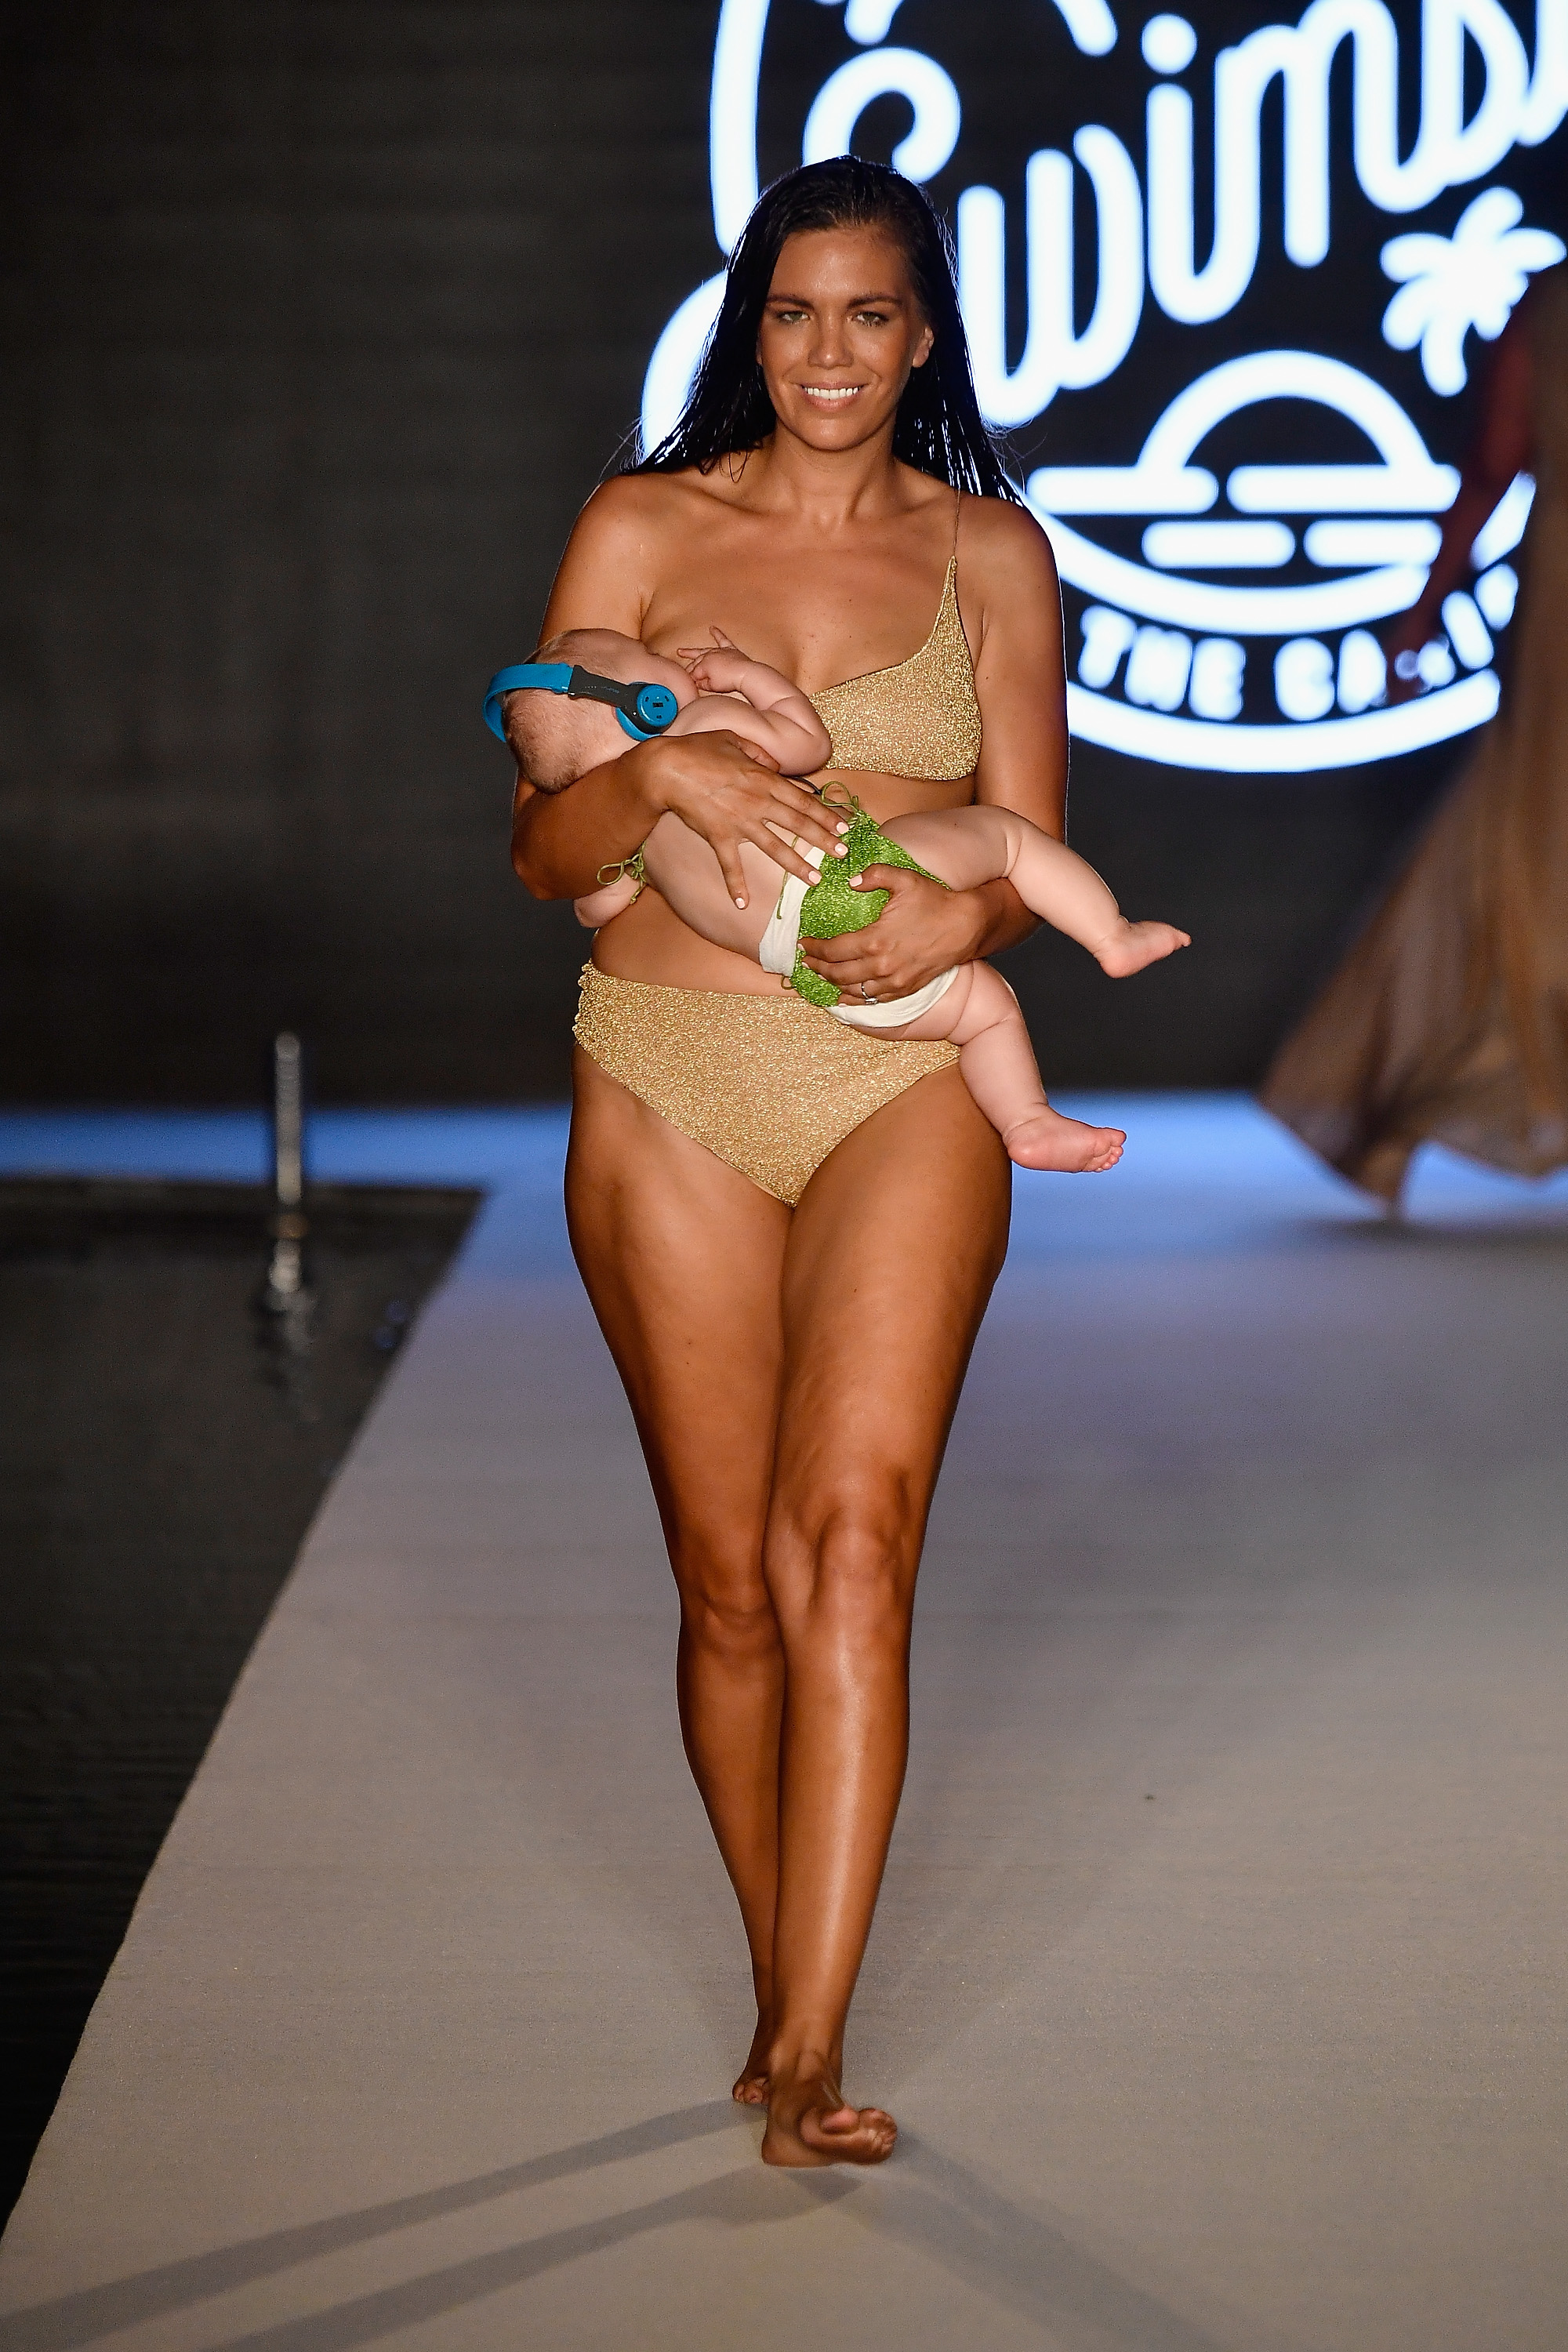 MIAMI, FL - JULY 15: A model breastfeeds while walking the runway for the 2018 Sports Illustrated Swimsuit show at PARAISO during Miami Swim Week at The W Hotel South Beach on July 15, 2018 in Miami, Florida. (Photo by Frazer Harrison/Getty Images for Sports Illustrated)